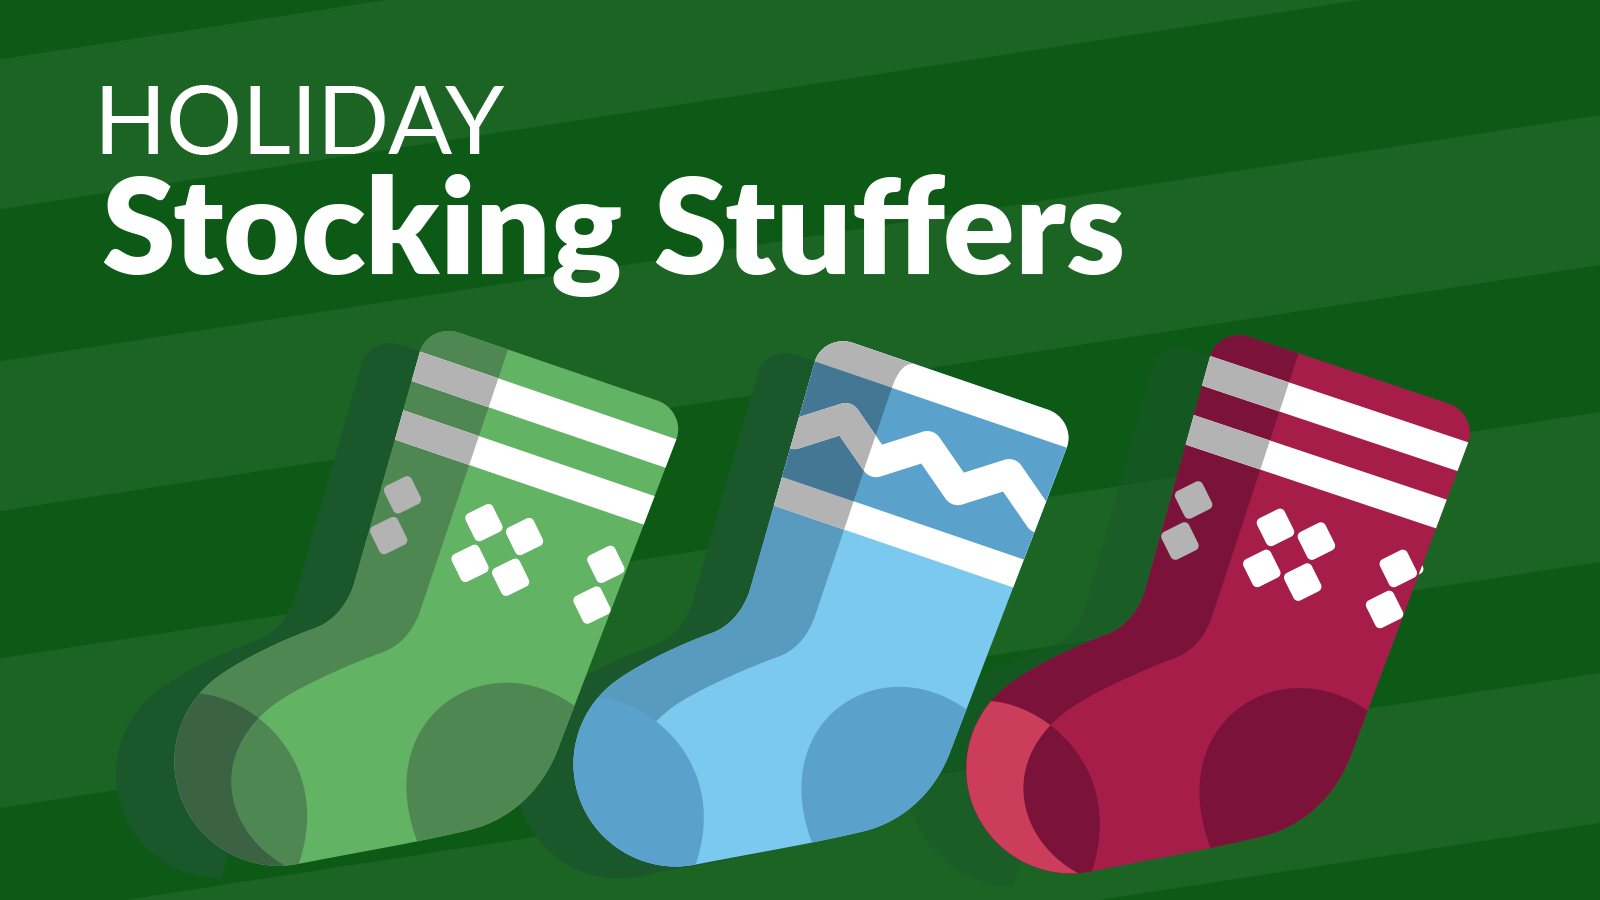 Holiday Stocking Stuffers